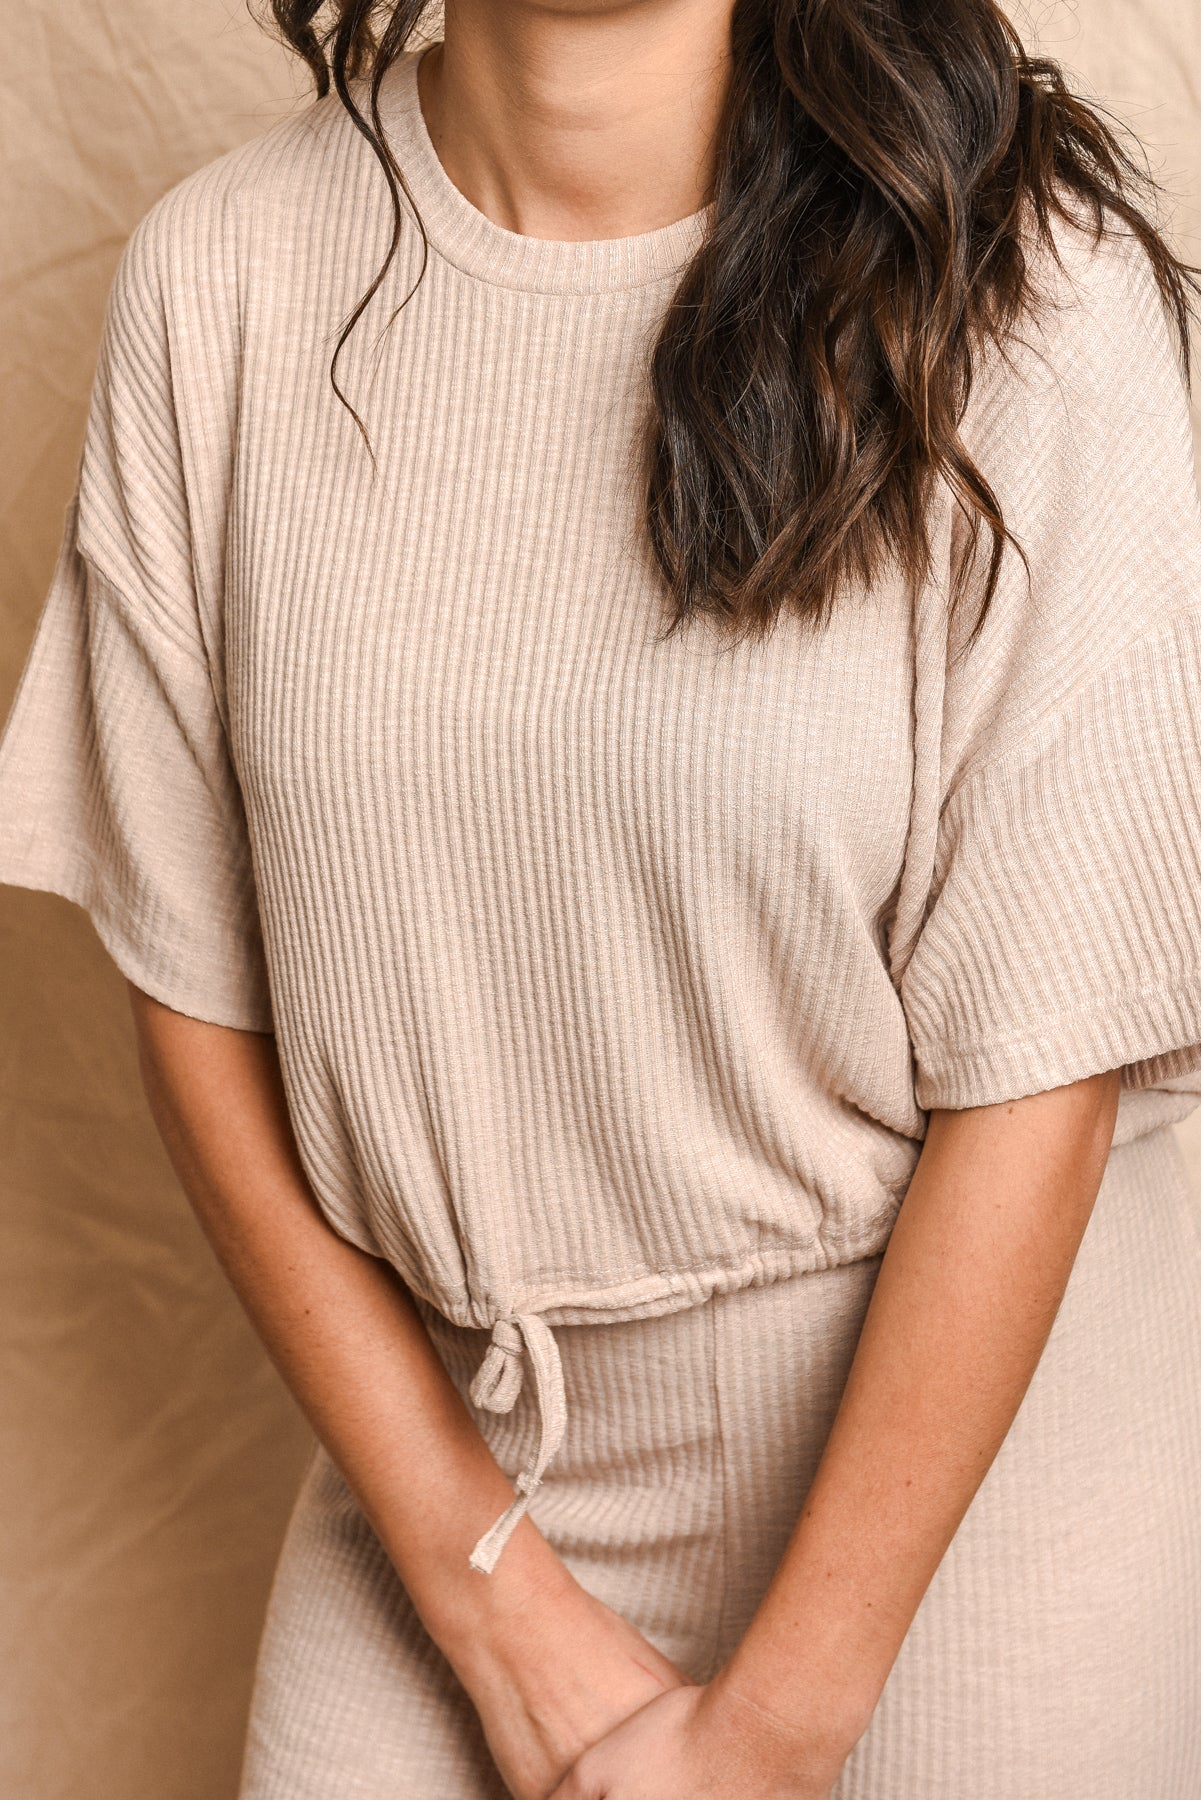 CHICAGO TOP - BEIGE